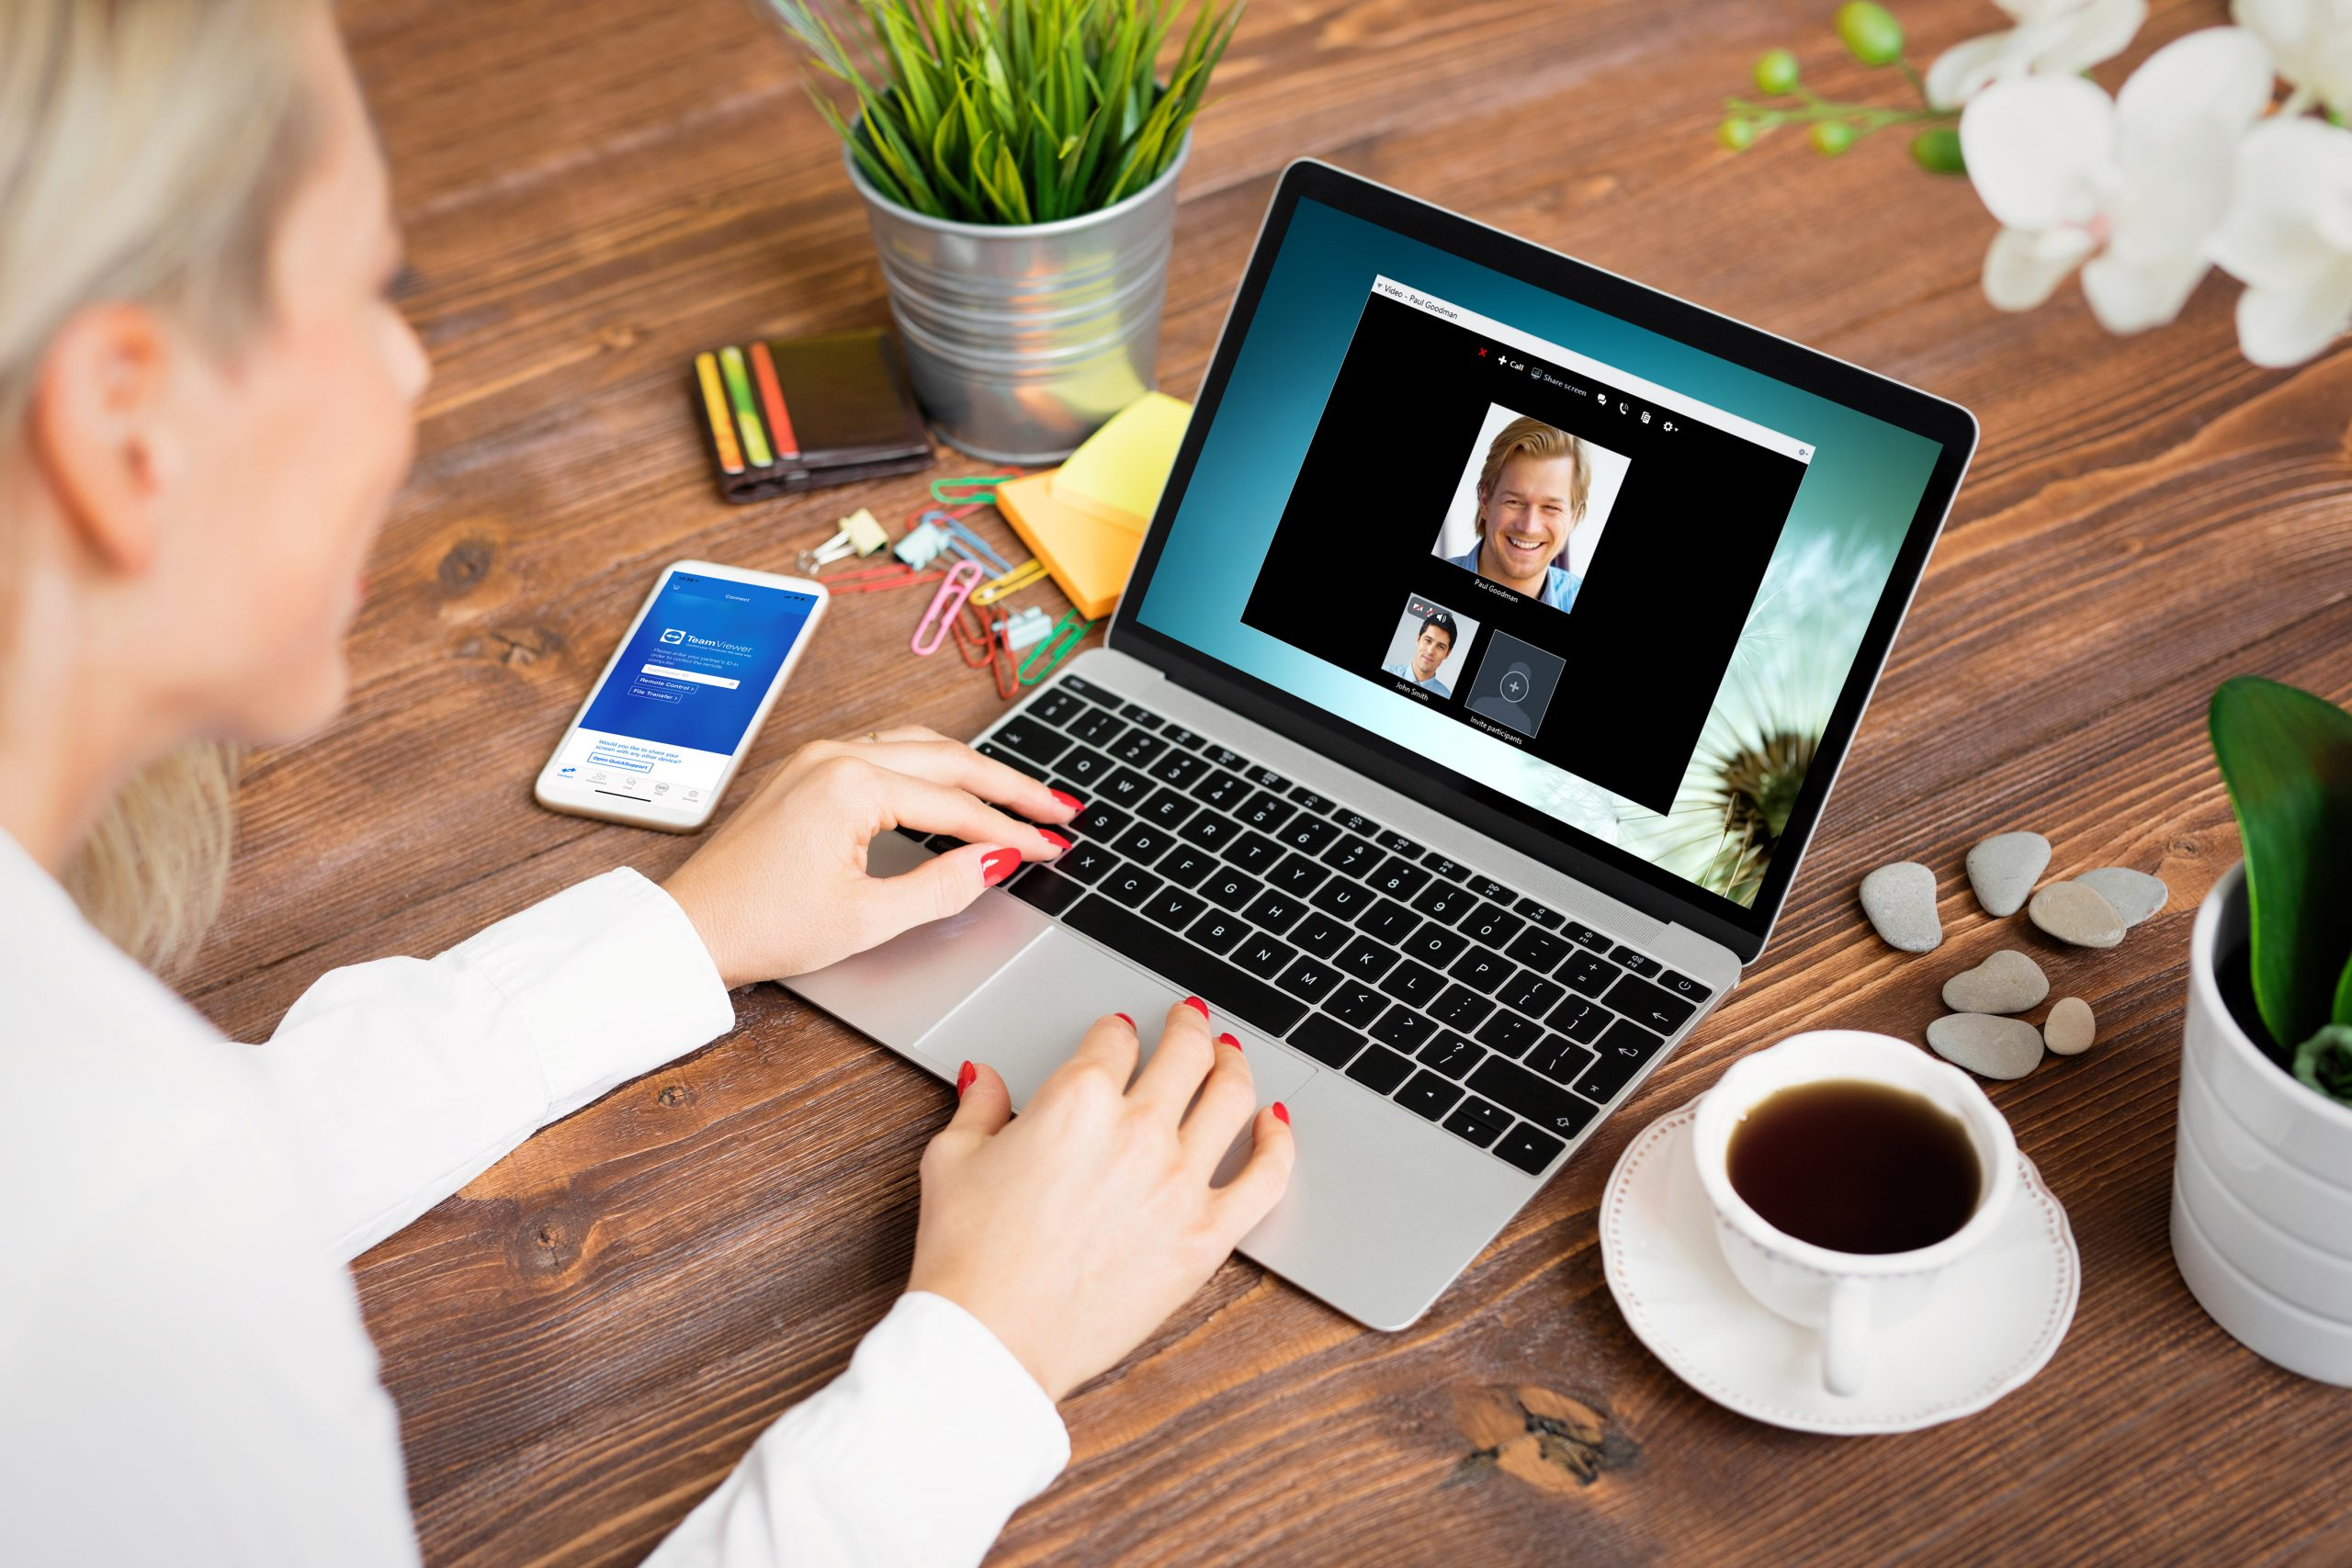 Video chat and file transfer with colleagues using TeamViewer